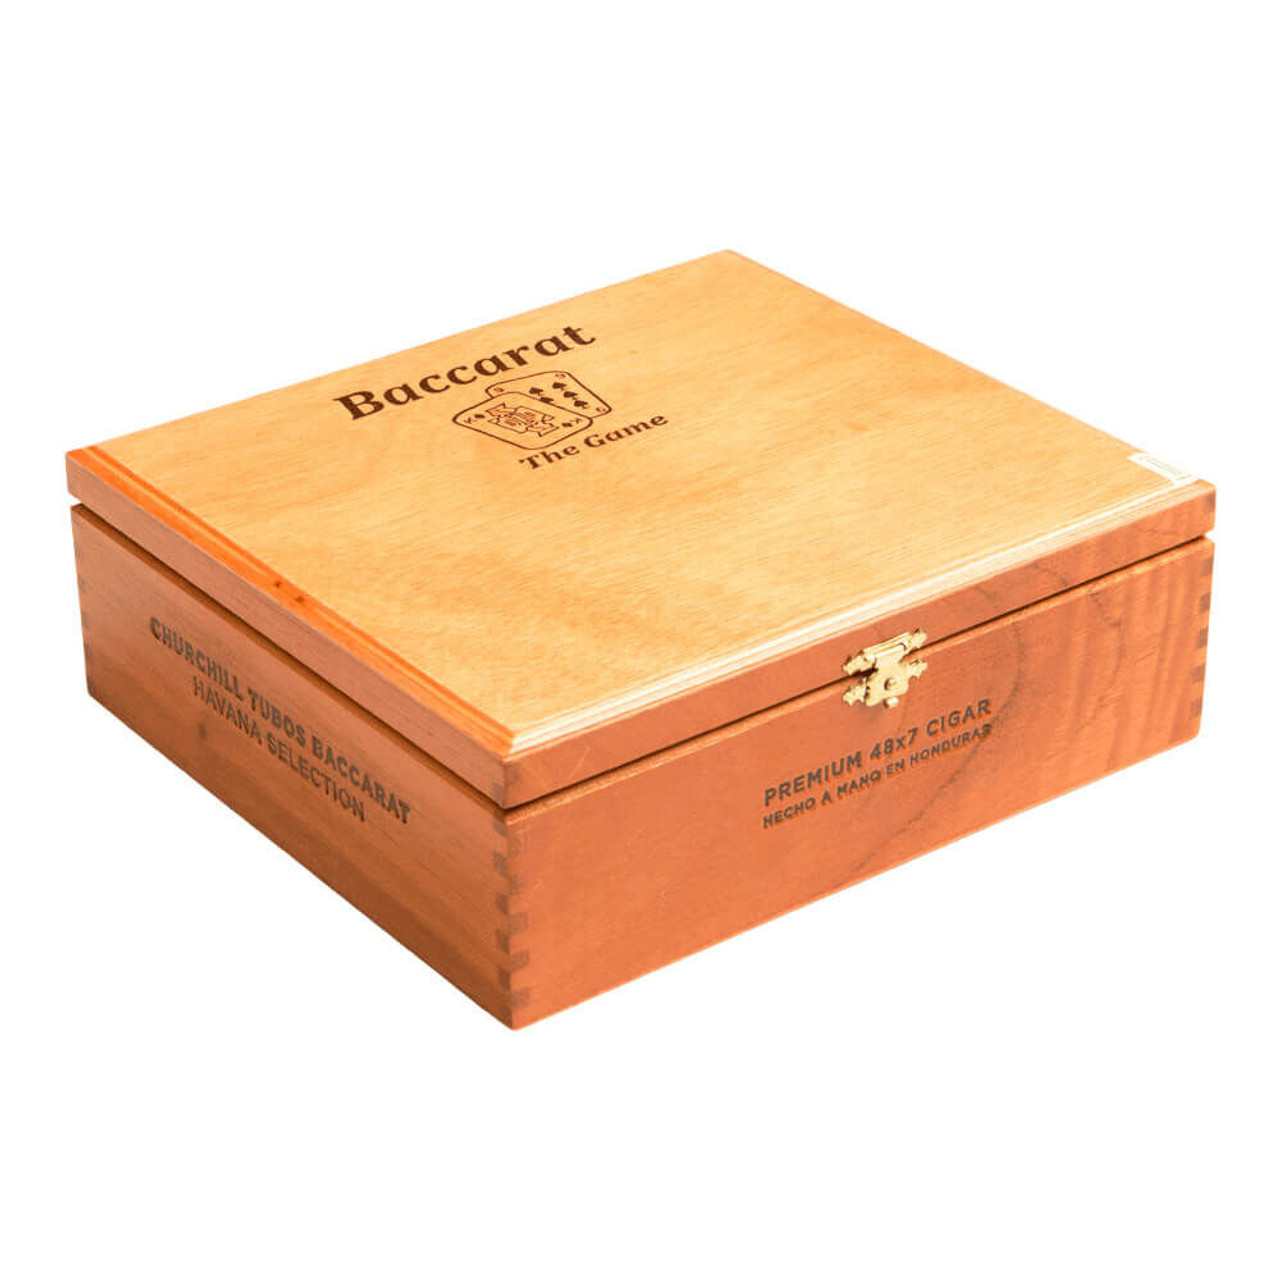 Baccarat Luchadore Tubo Cigars - 6 x 43 (Box of 25)